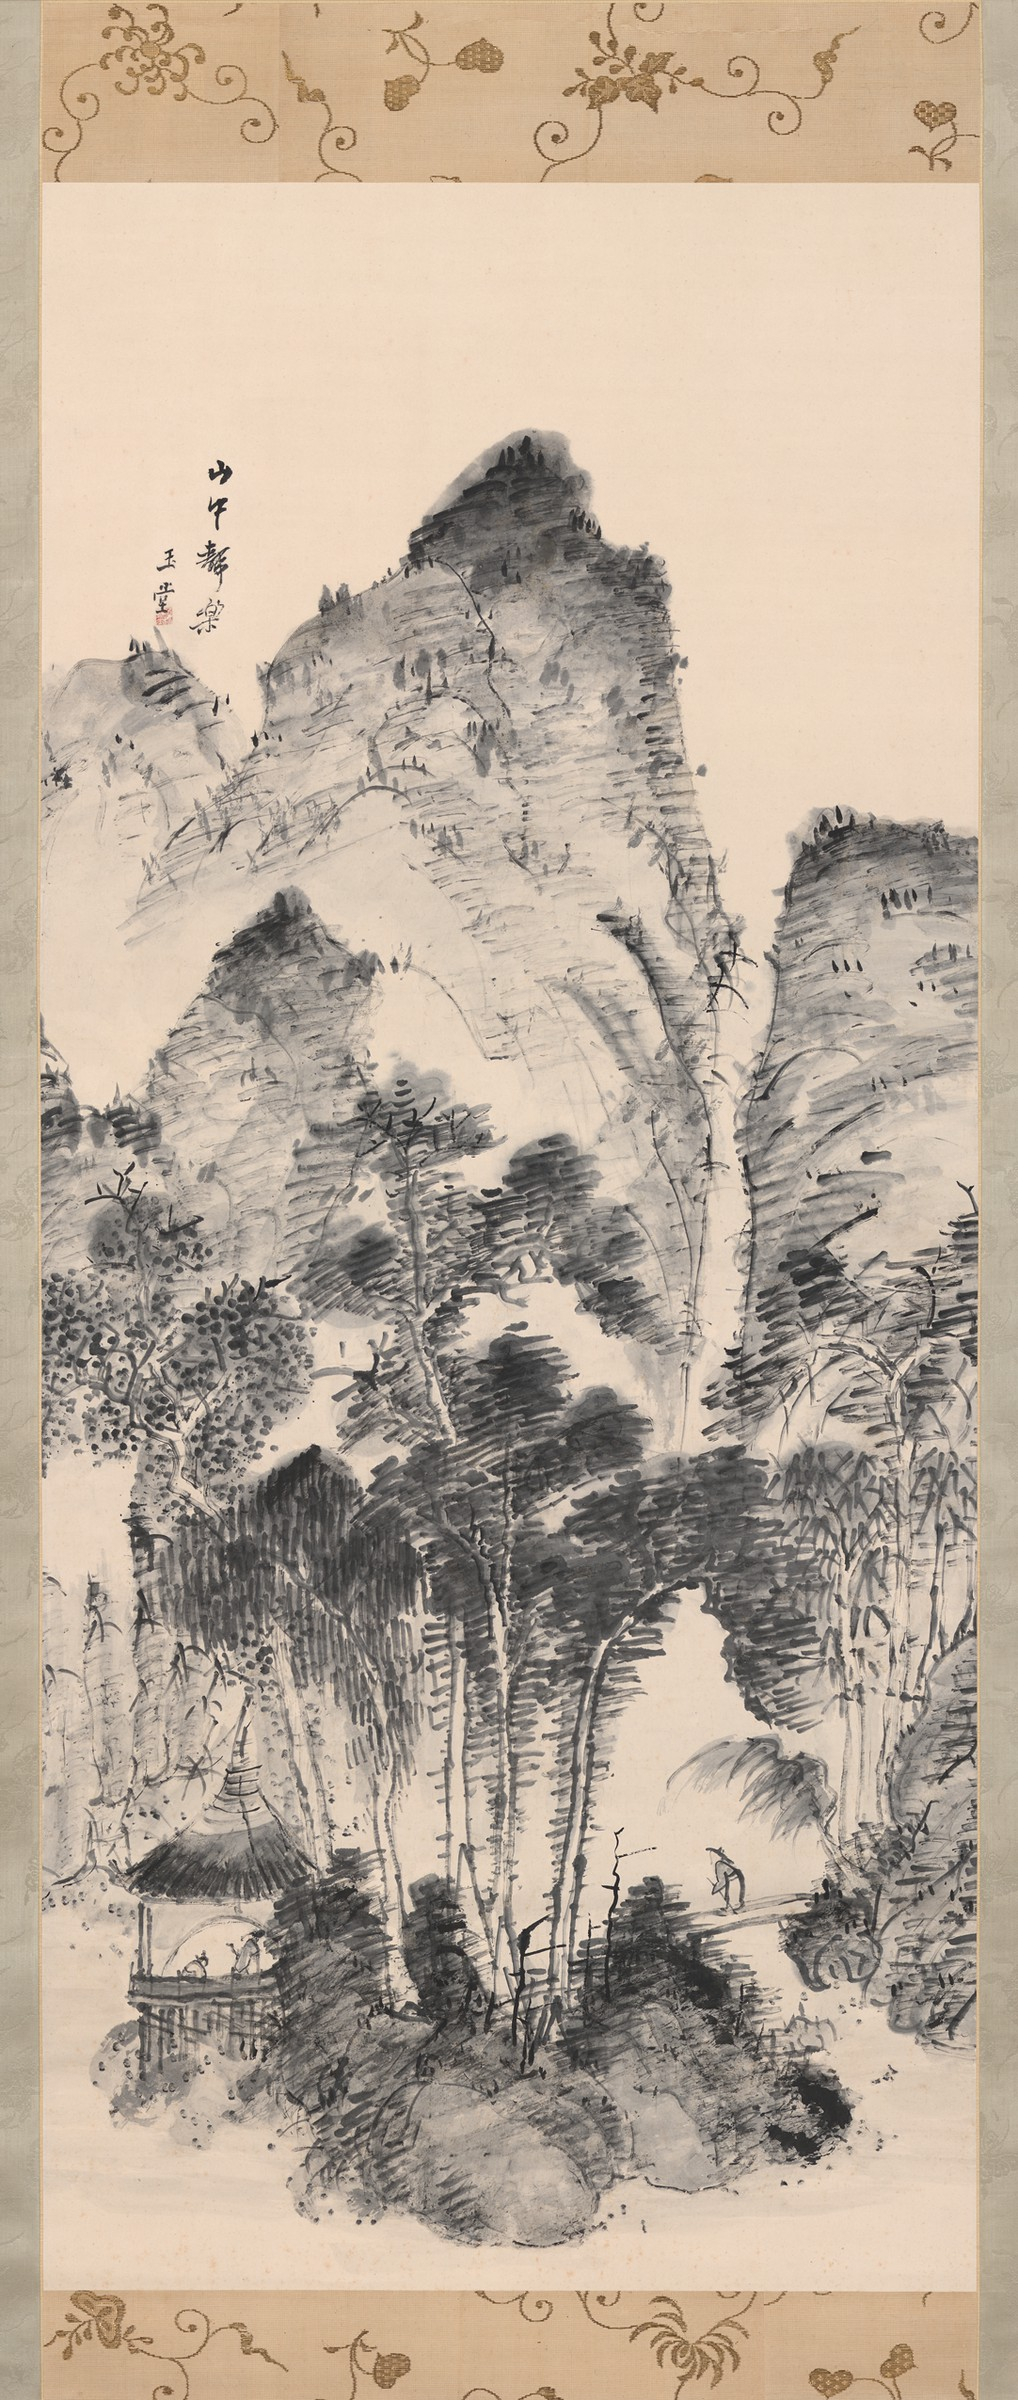 This vertical hanging scroll renders a mountainous landscape in monochrome ink. Three trees occupy the central foreground, where a hatted figure crosses a bridge at right to reach two figures in a thatched pavilion at left.